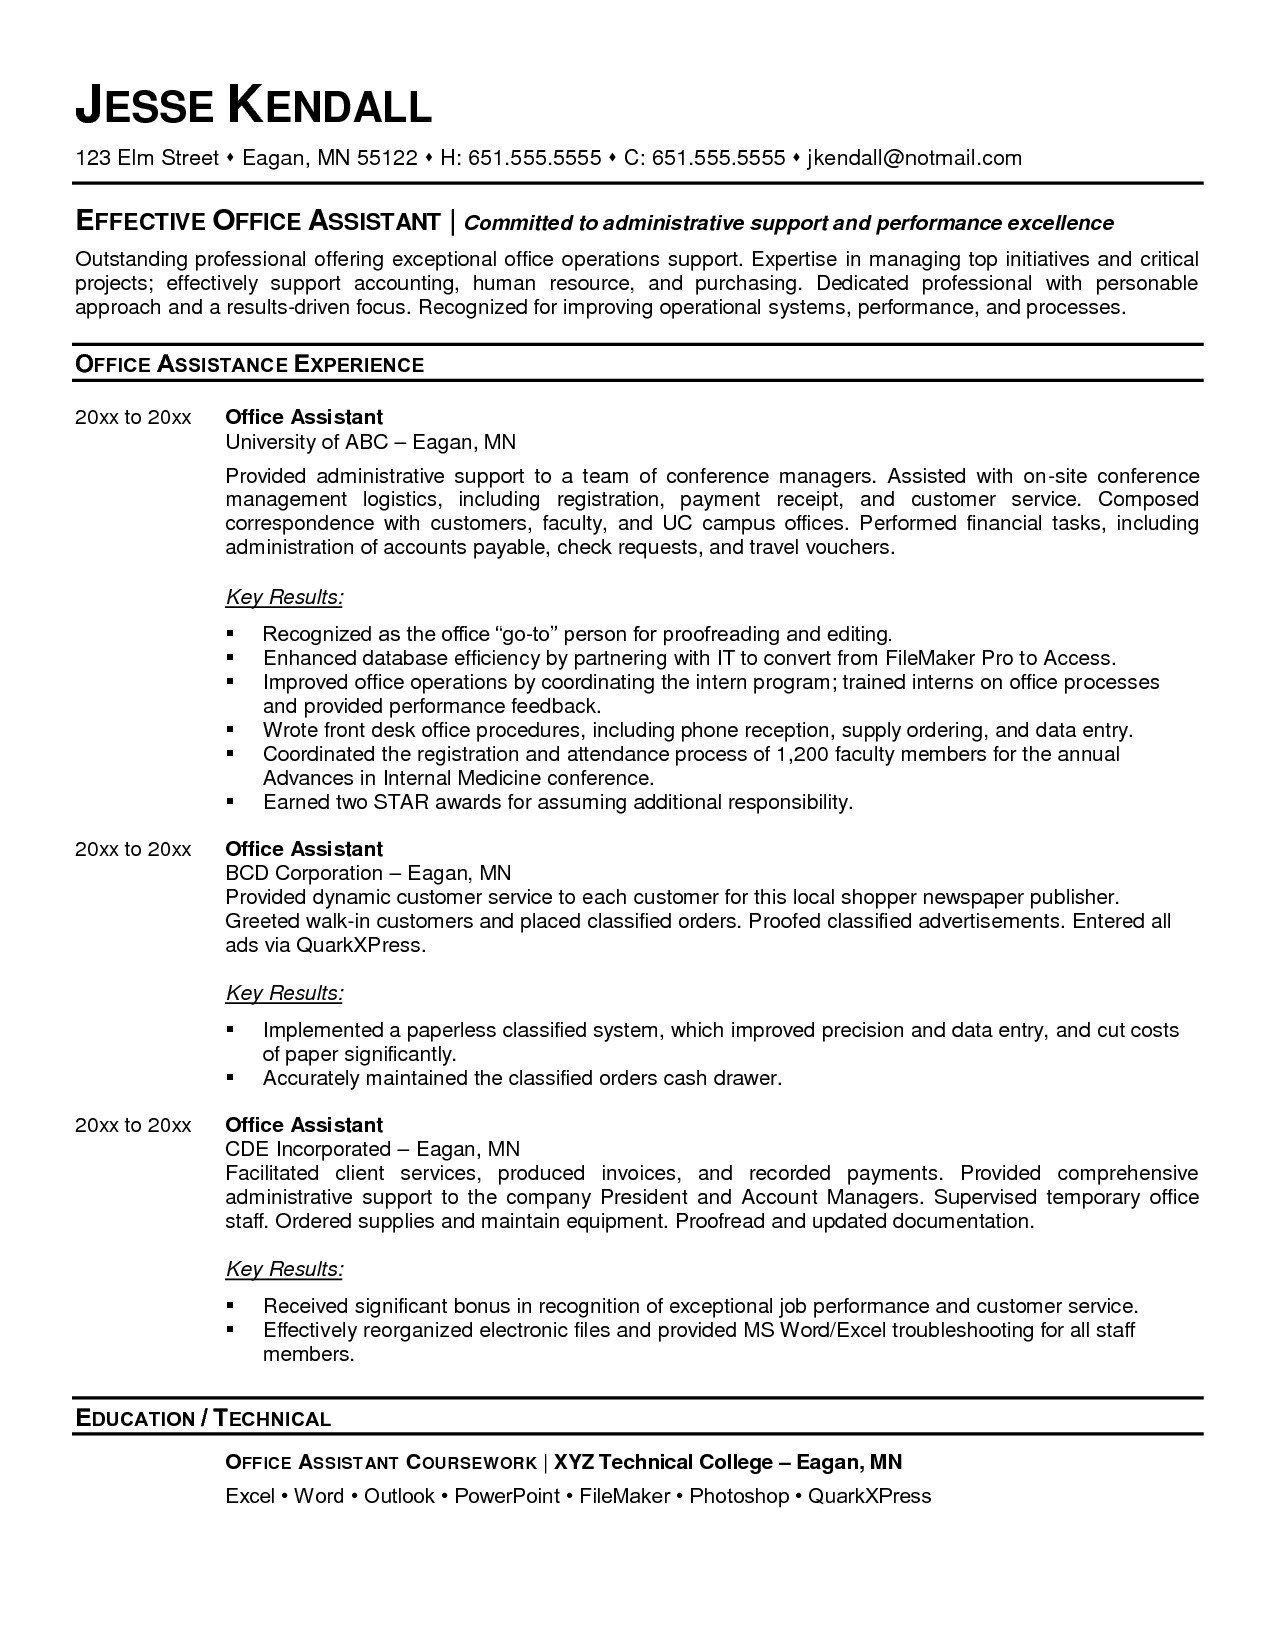 Going Paperless Letter to Customers Template - Resume Writing Examples New New Job Advertisement Template Igreba